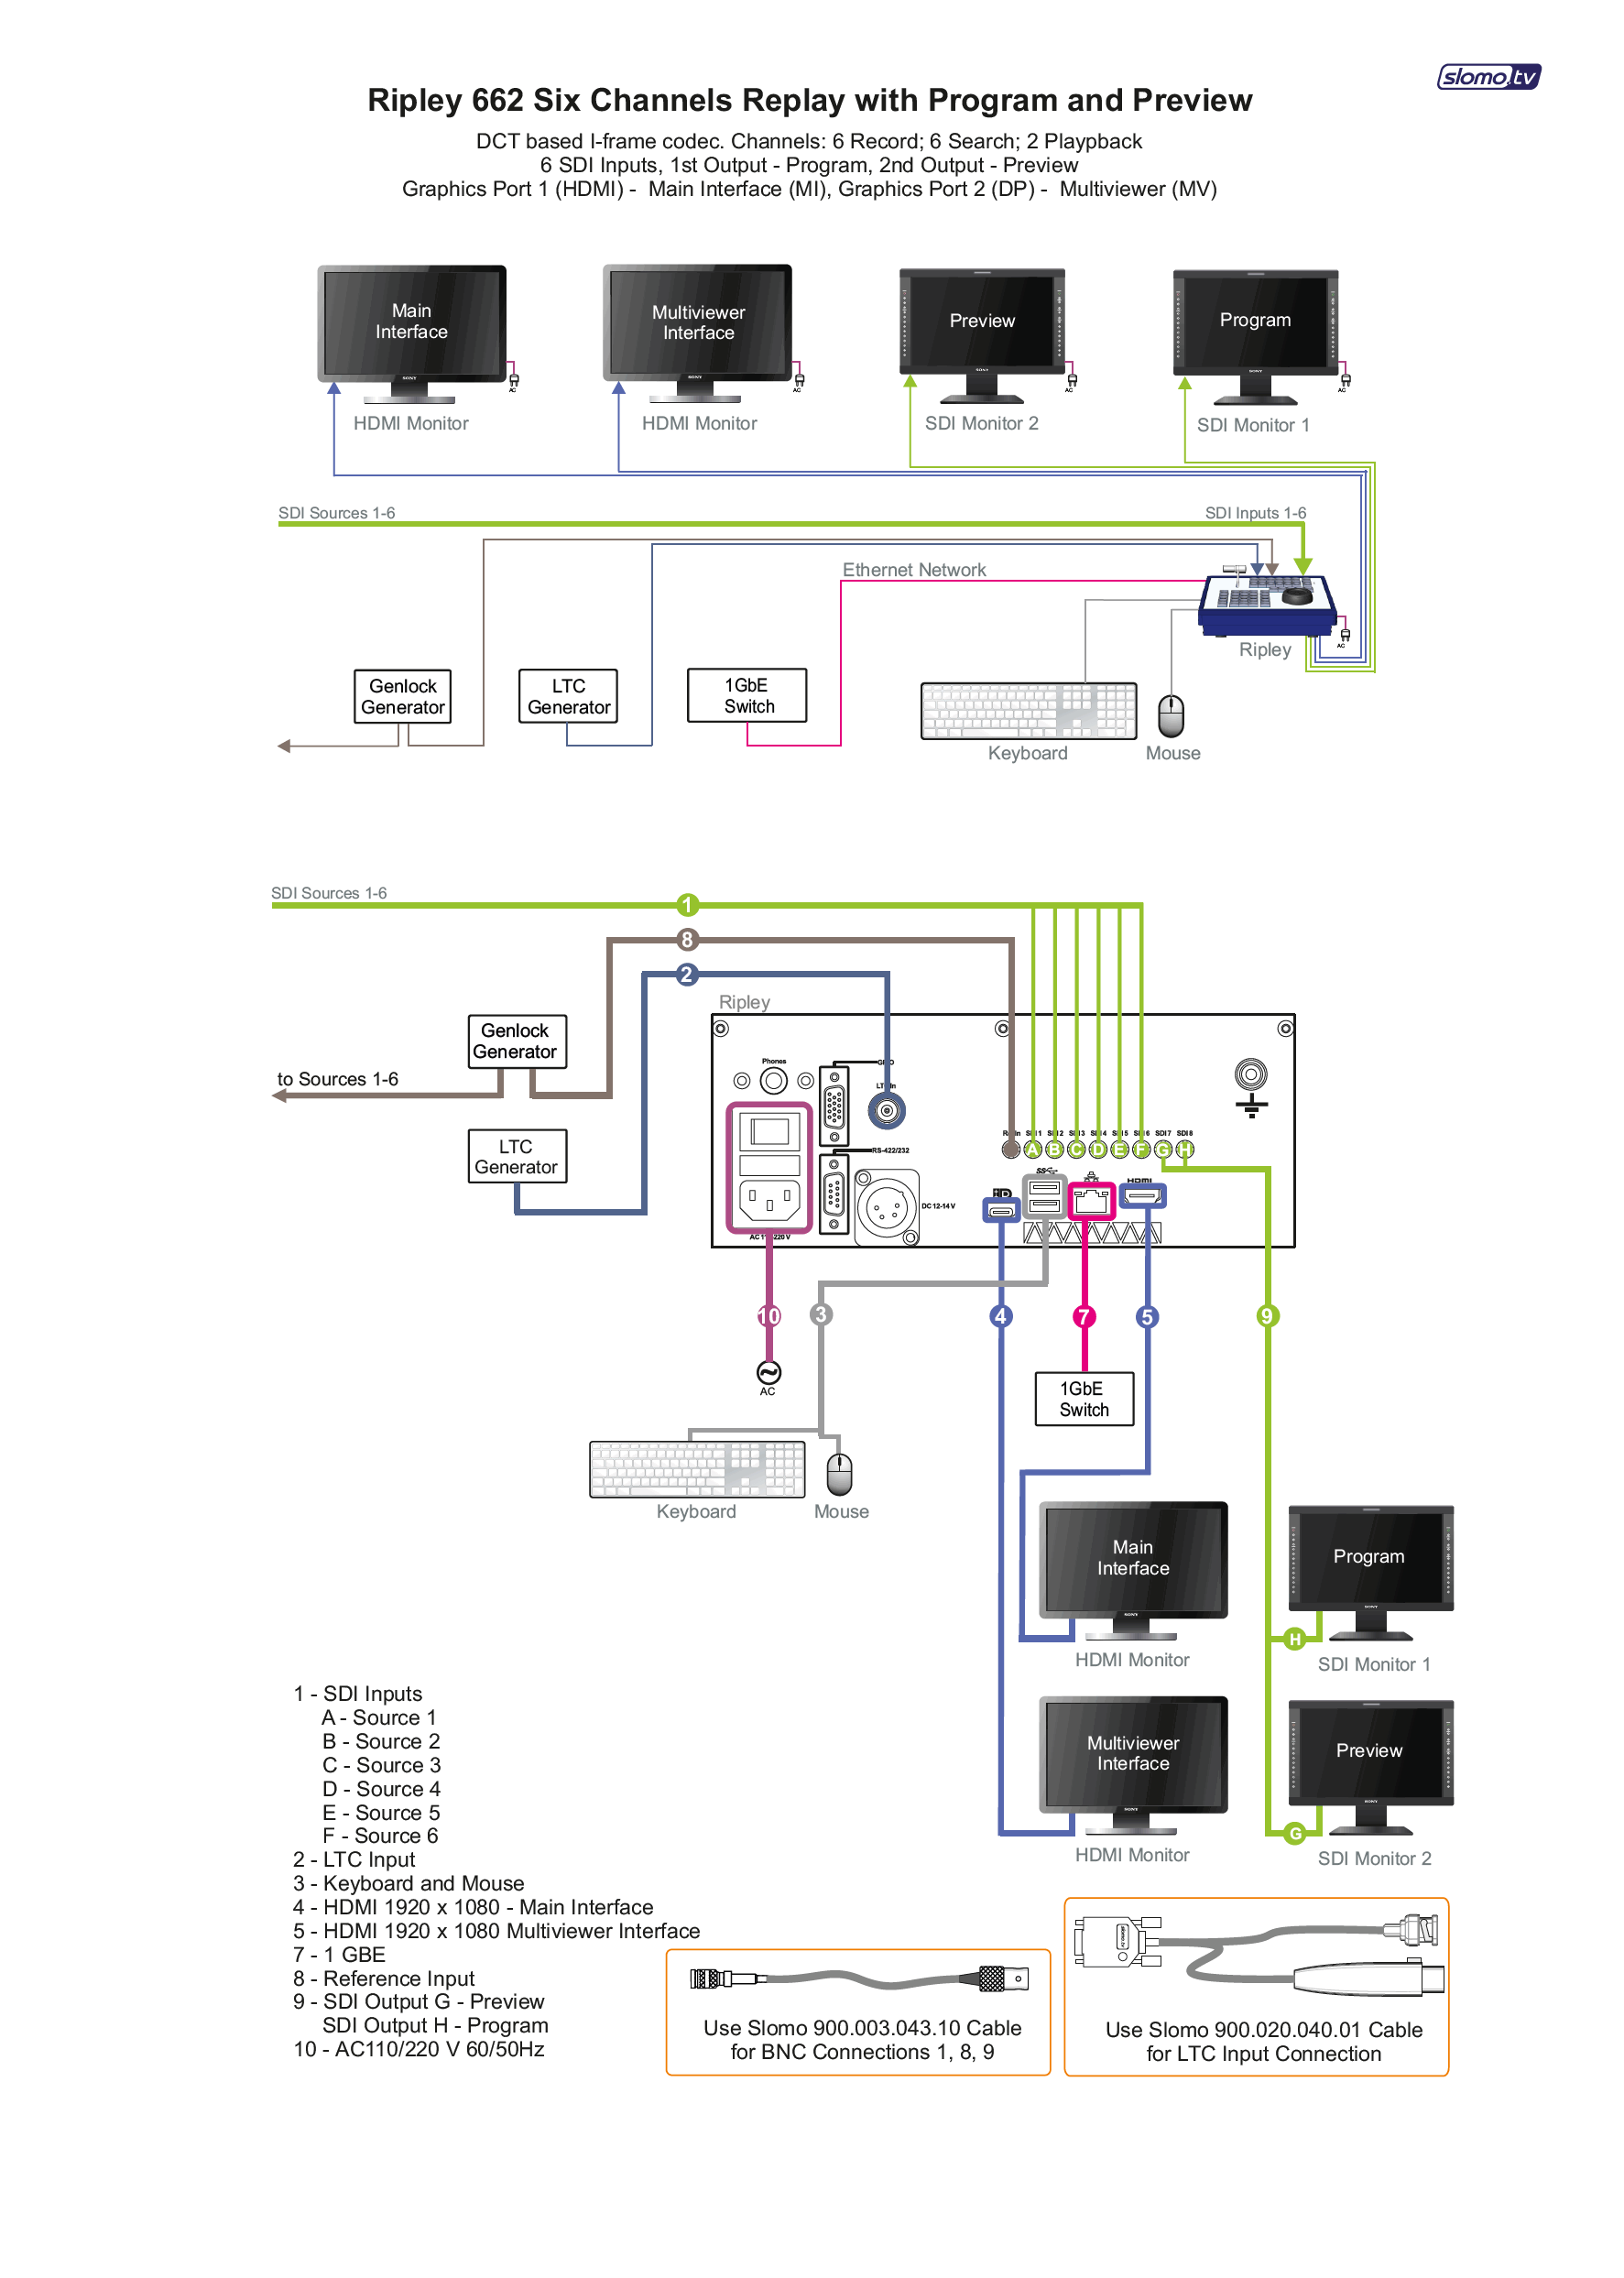 Ripley Server Typical Configurations